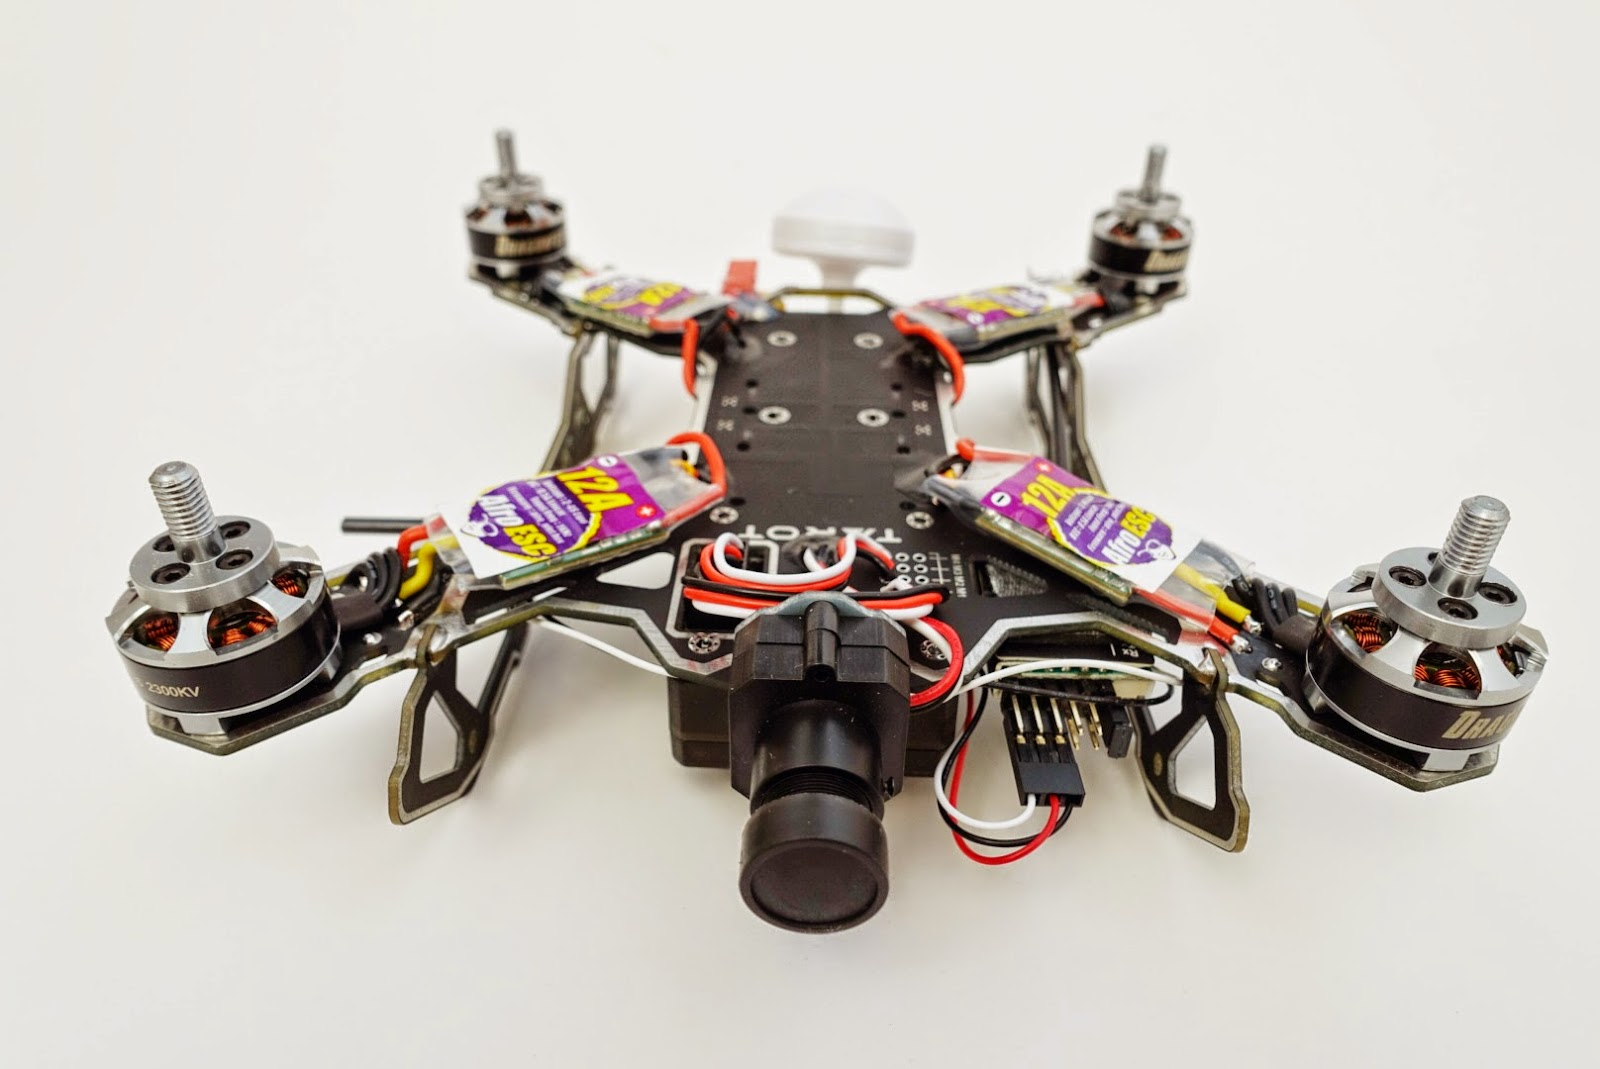 fpv model tarot 200mm mini quadcopter tl200a